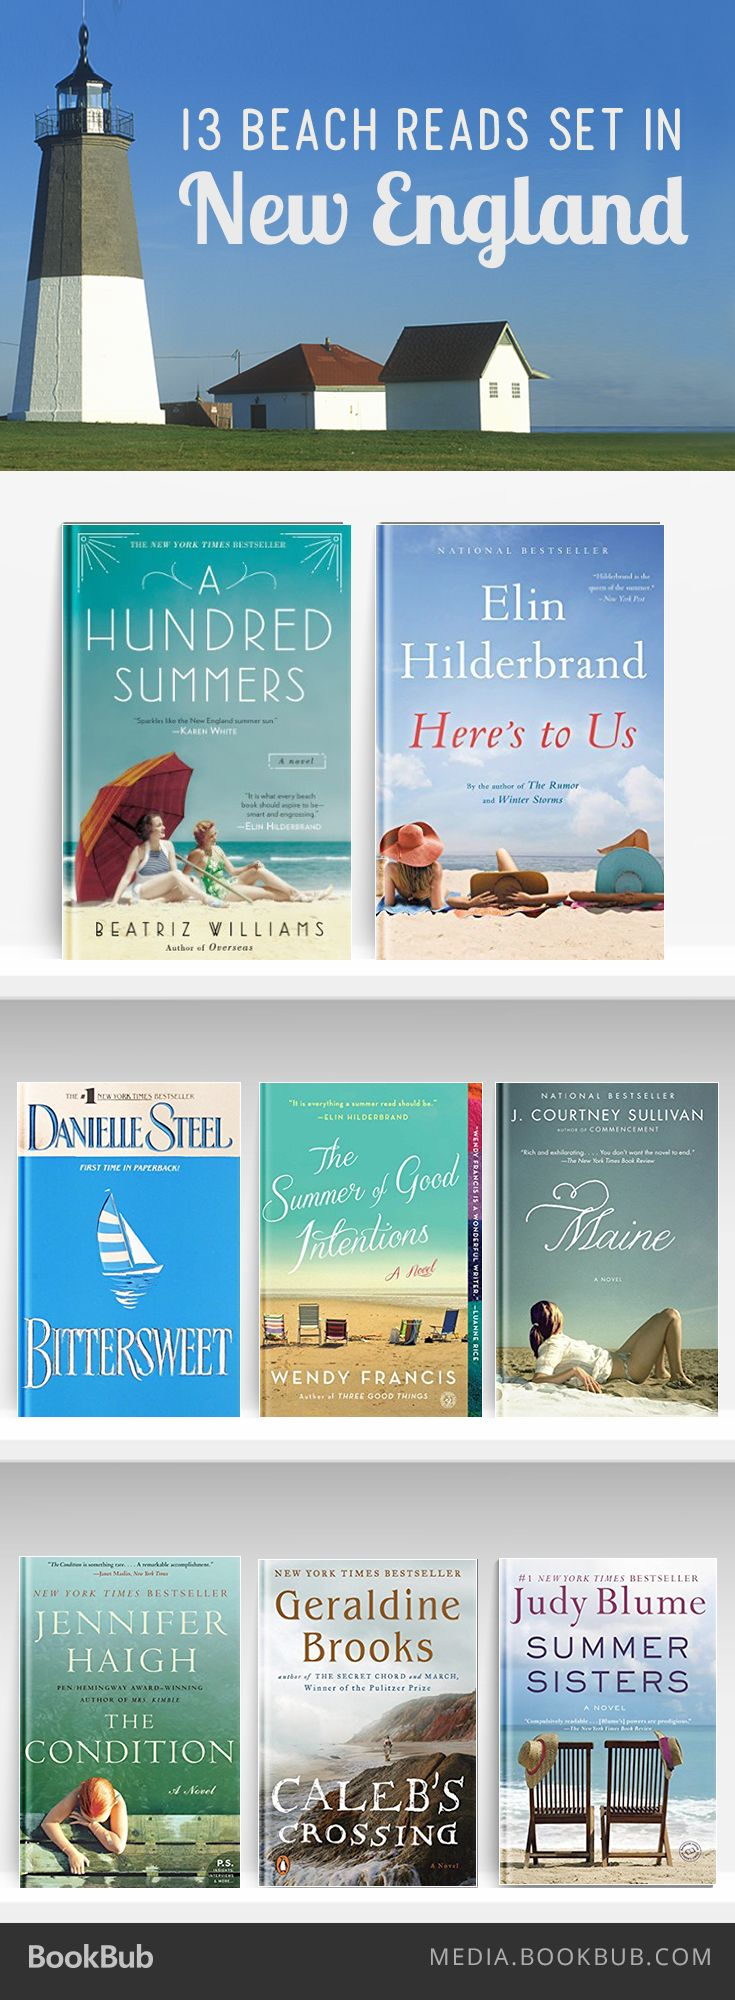 13 Great Beach Reads Set In New England